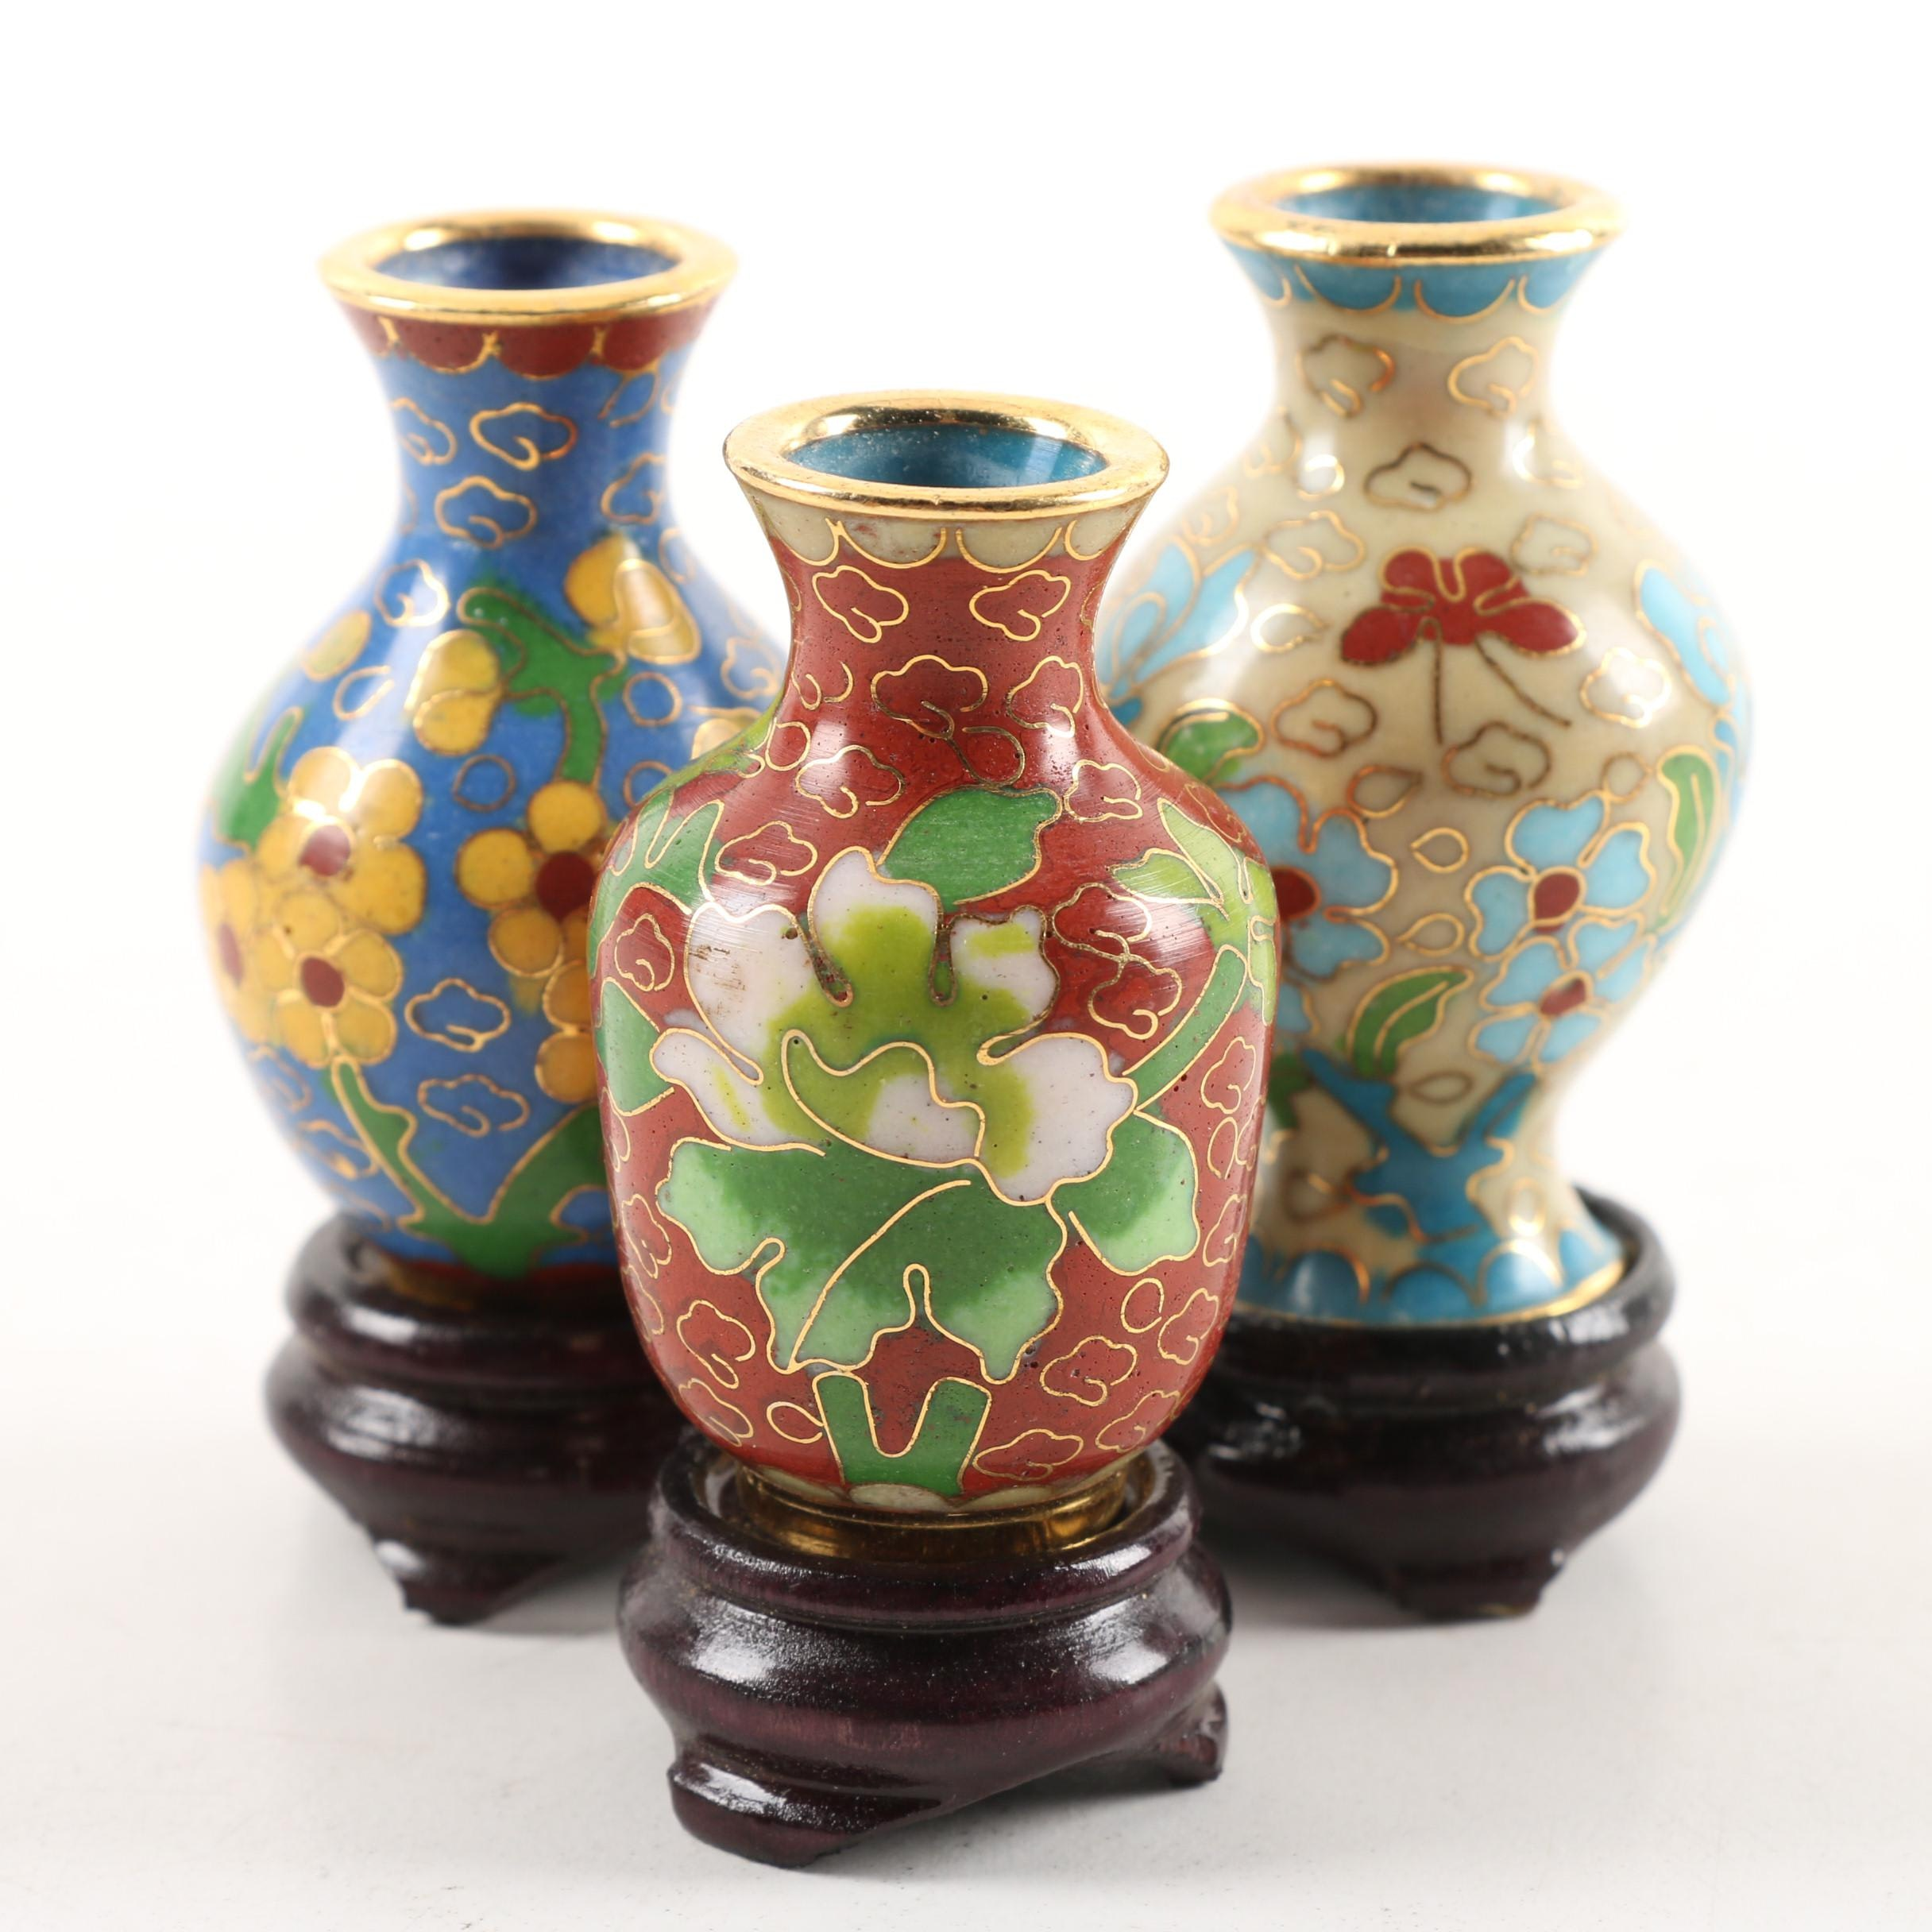 Three Miniature Cloisonne Vases With Carved Wood Stands